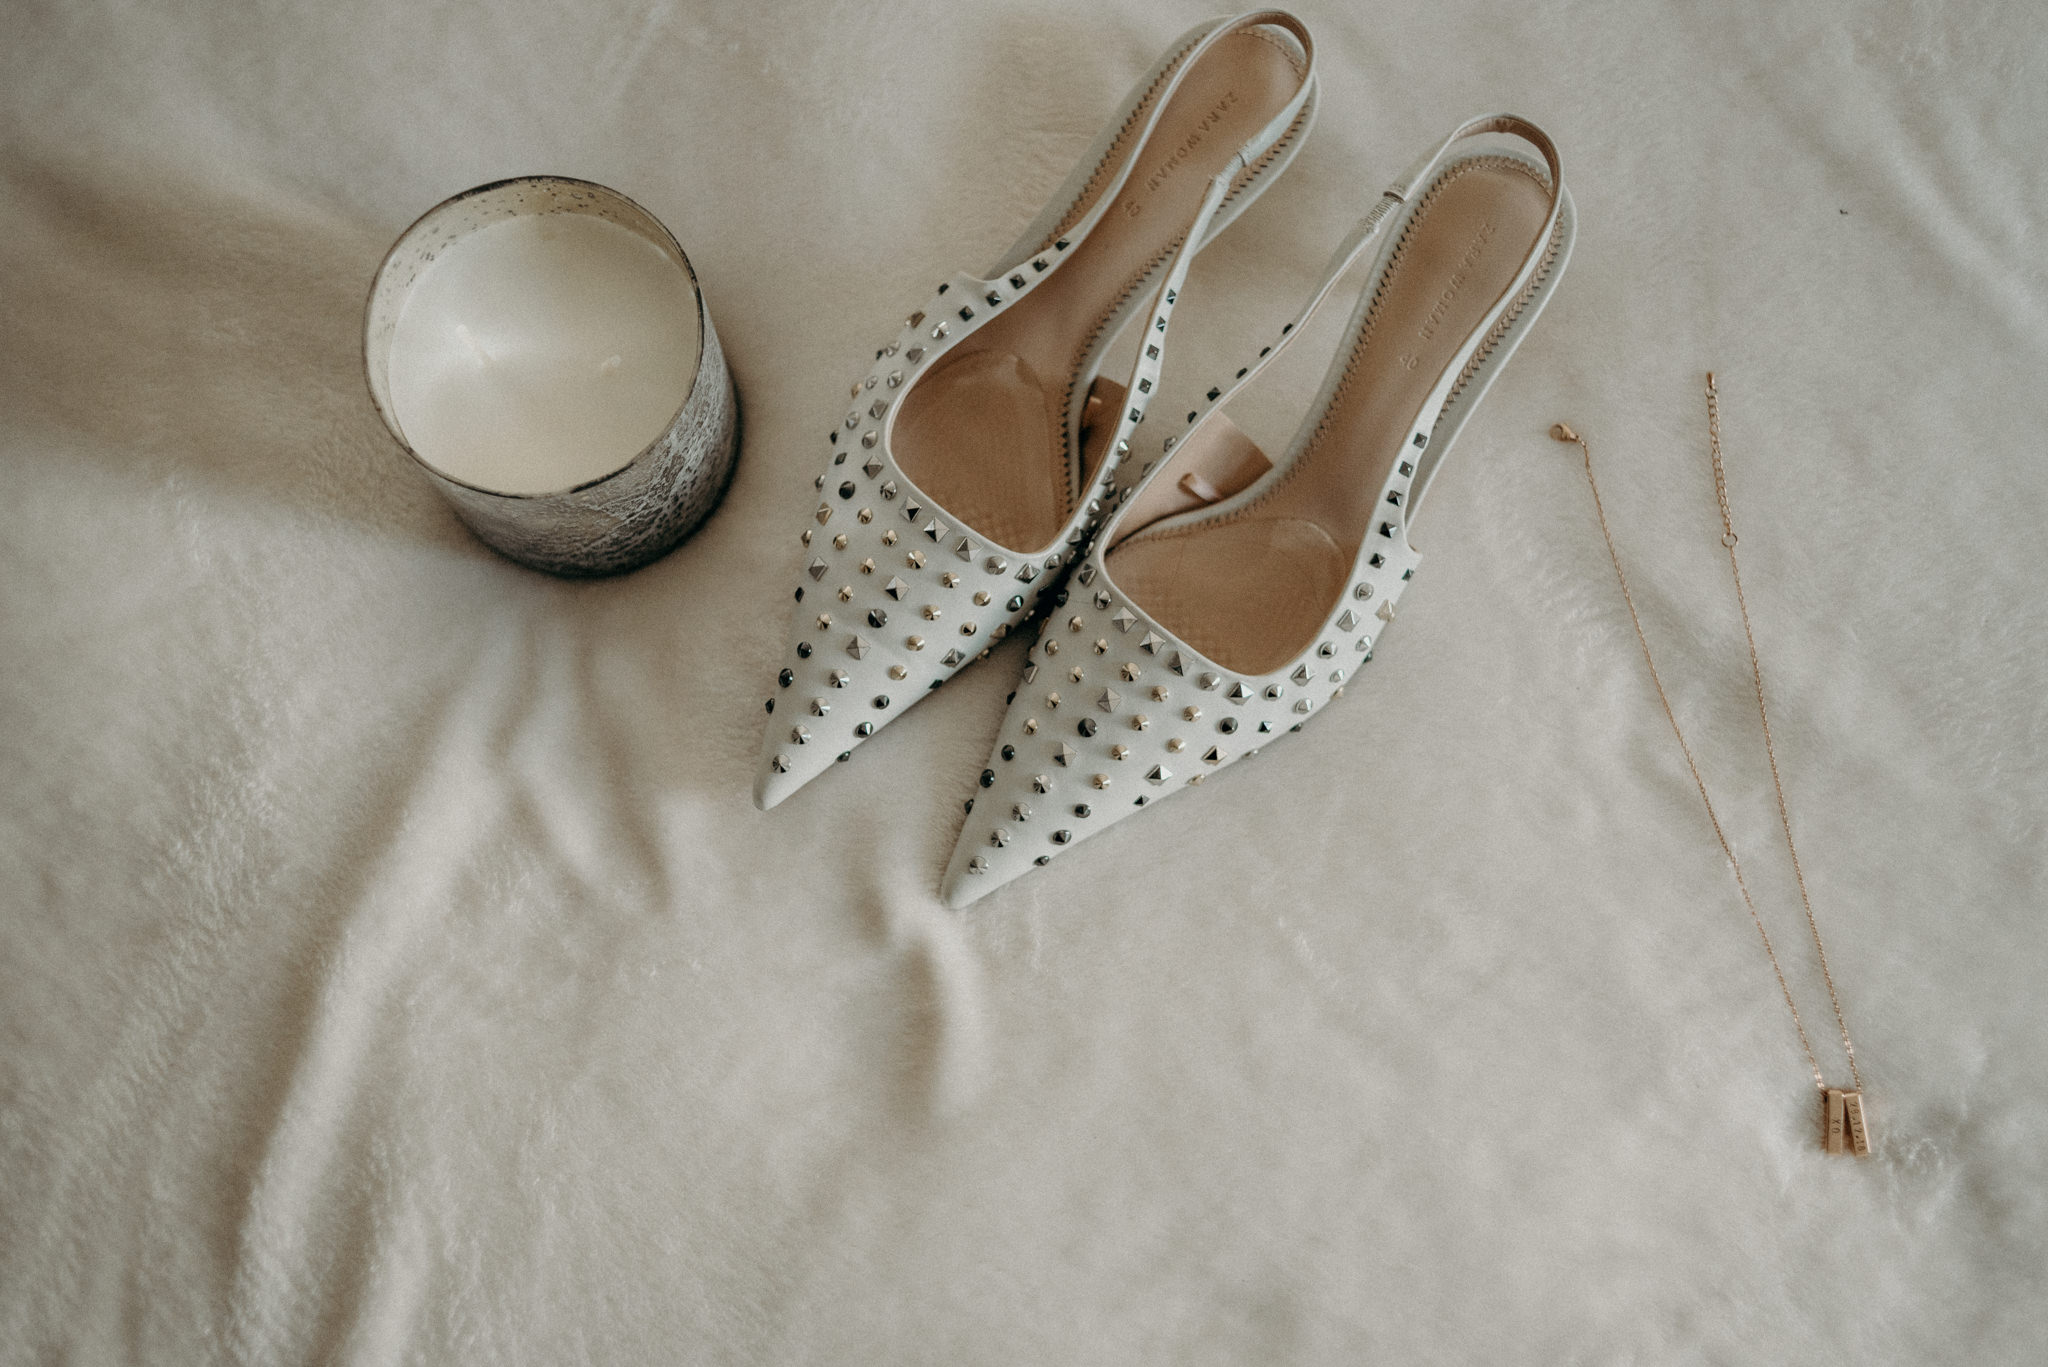 studded wedding shoes on bed